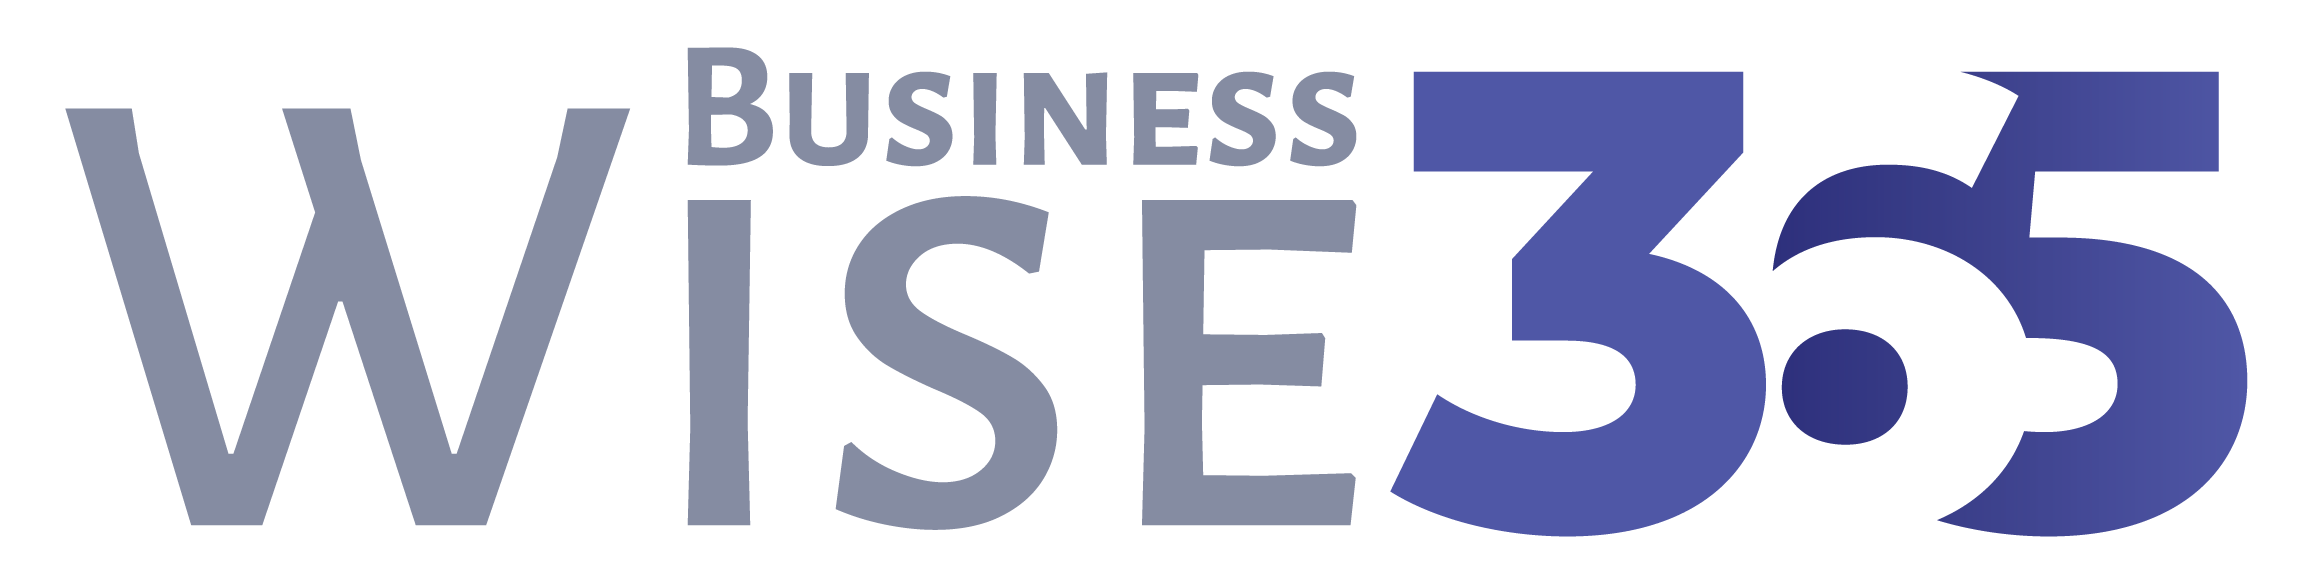 Business Wise 365